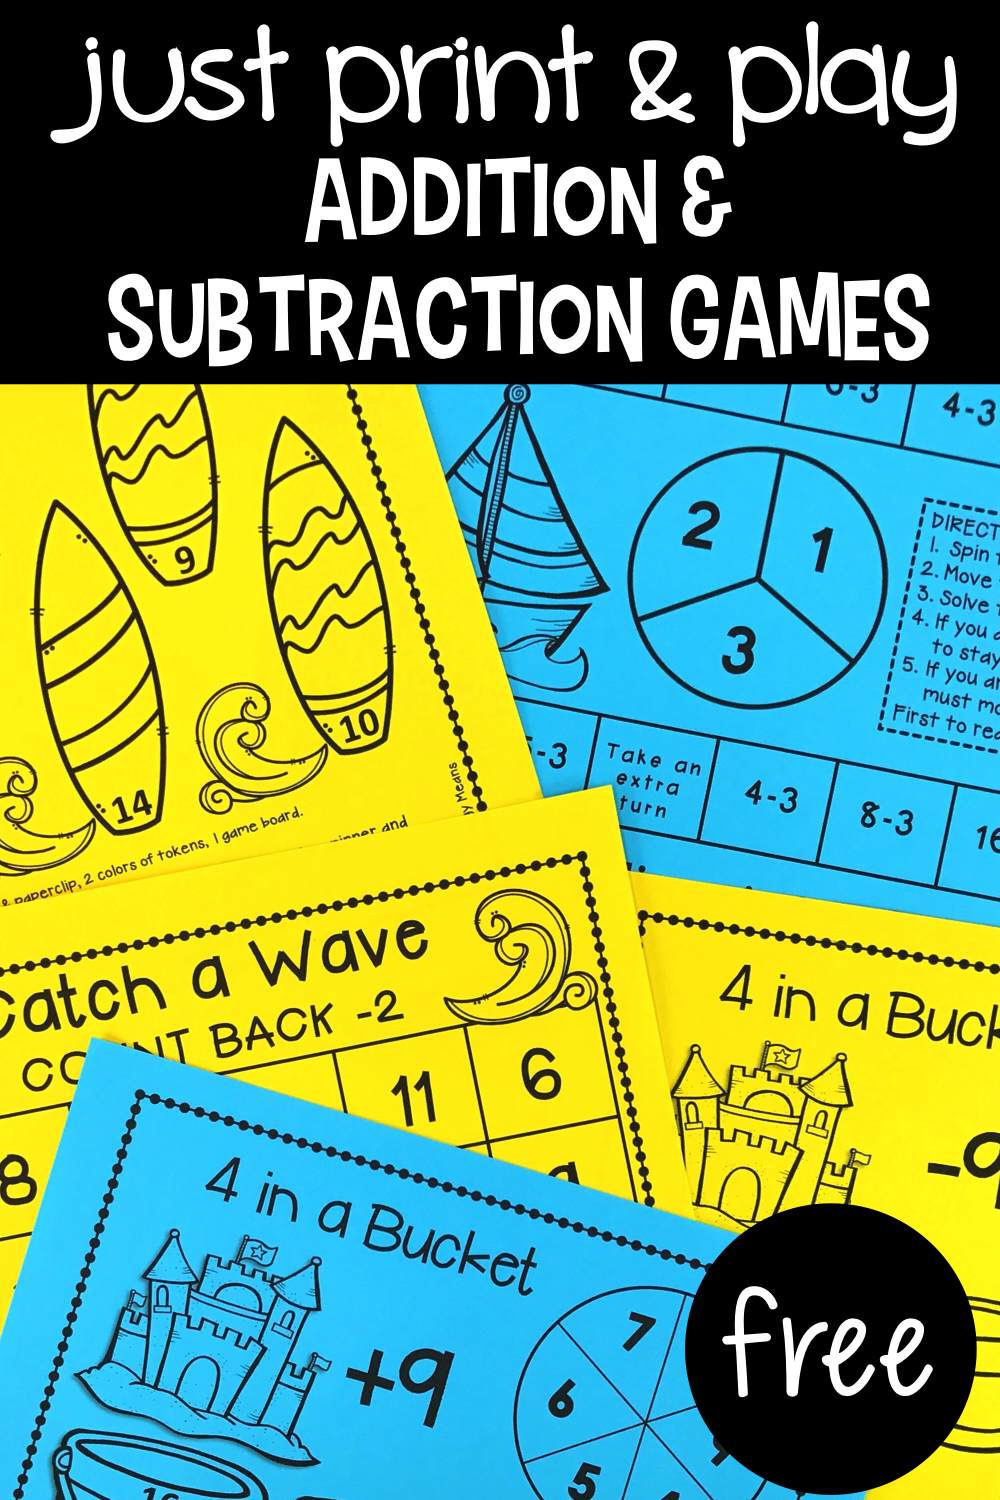 CLICK HERE TO GET FREE ADDITION & SUBTRACTION GAMES